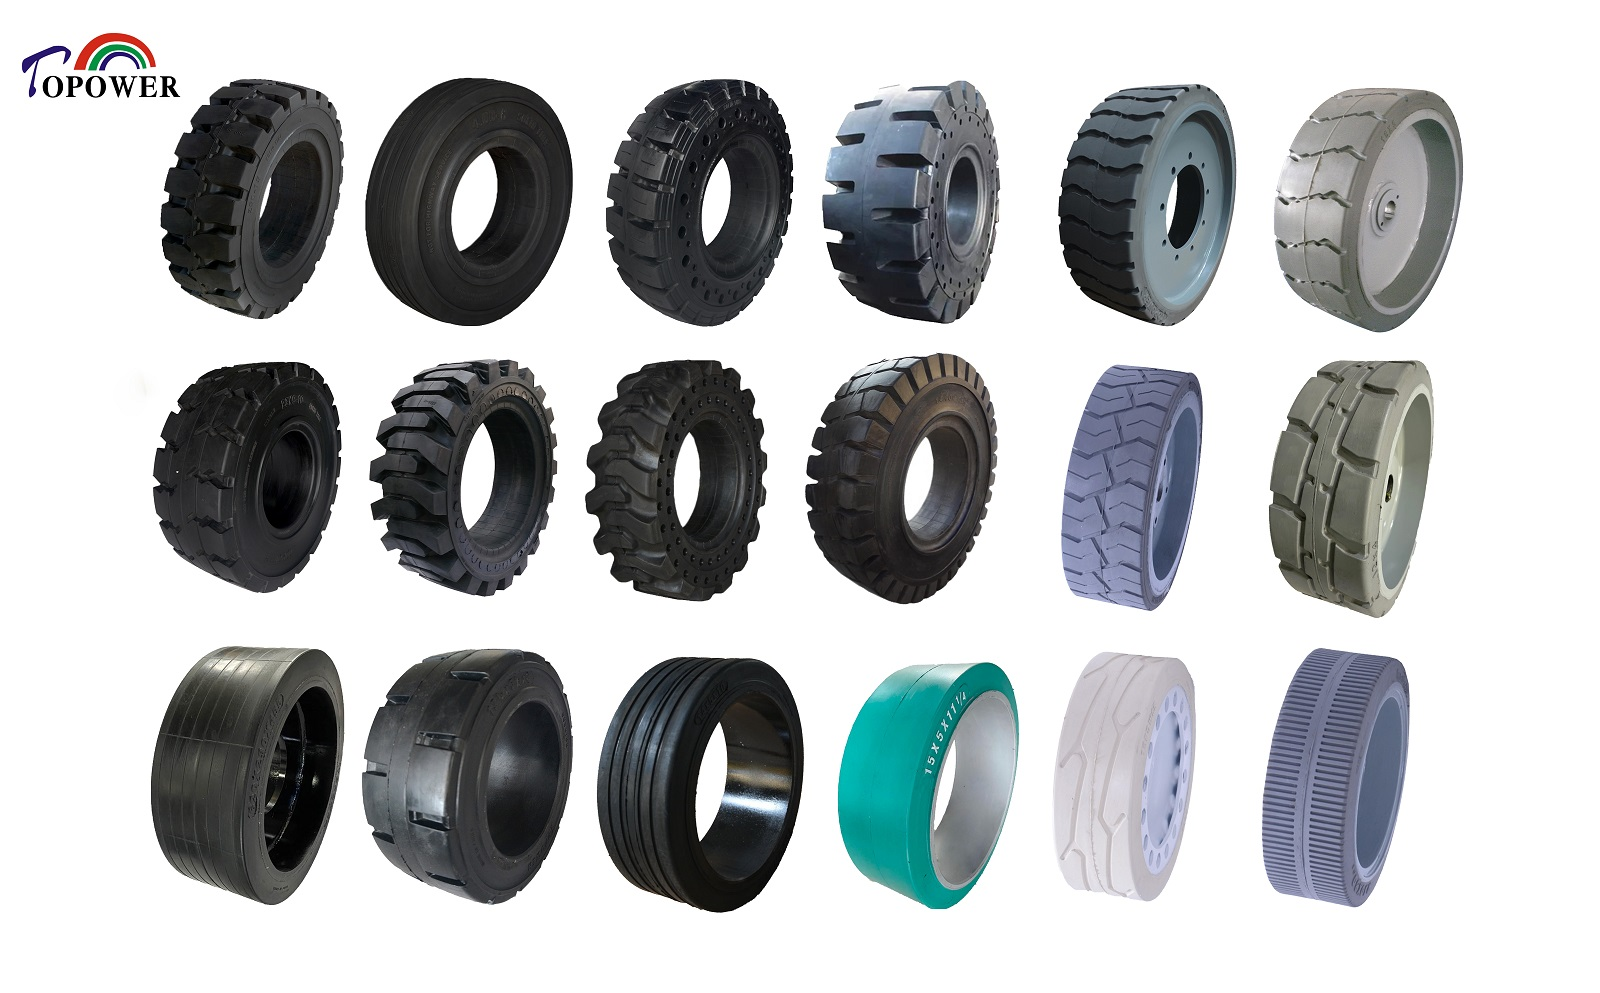 Topower solid tire series - 副本.jpg